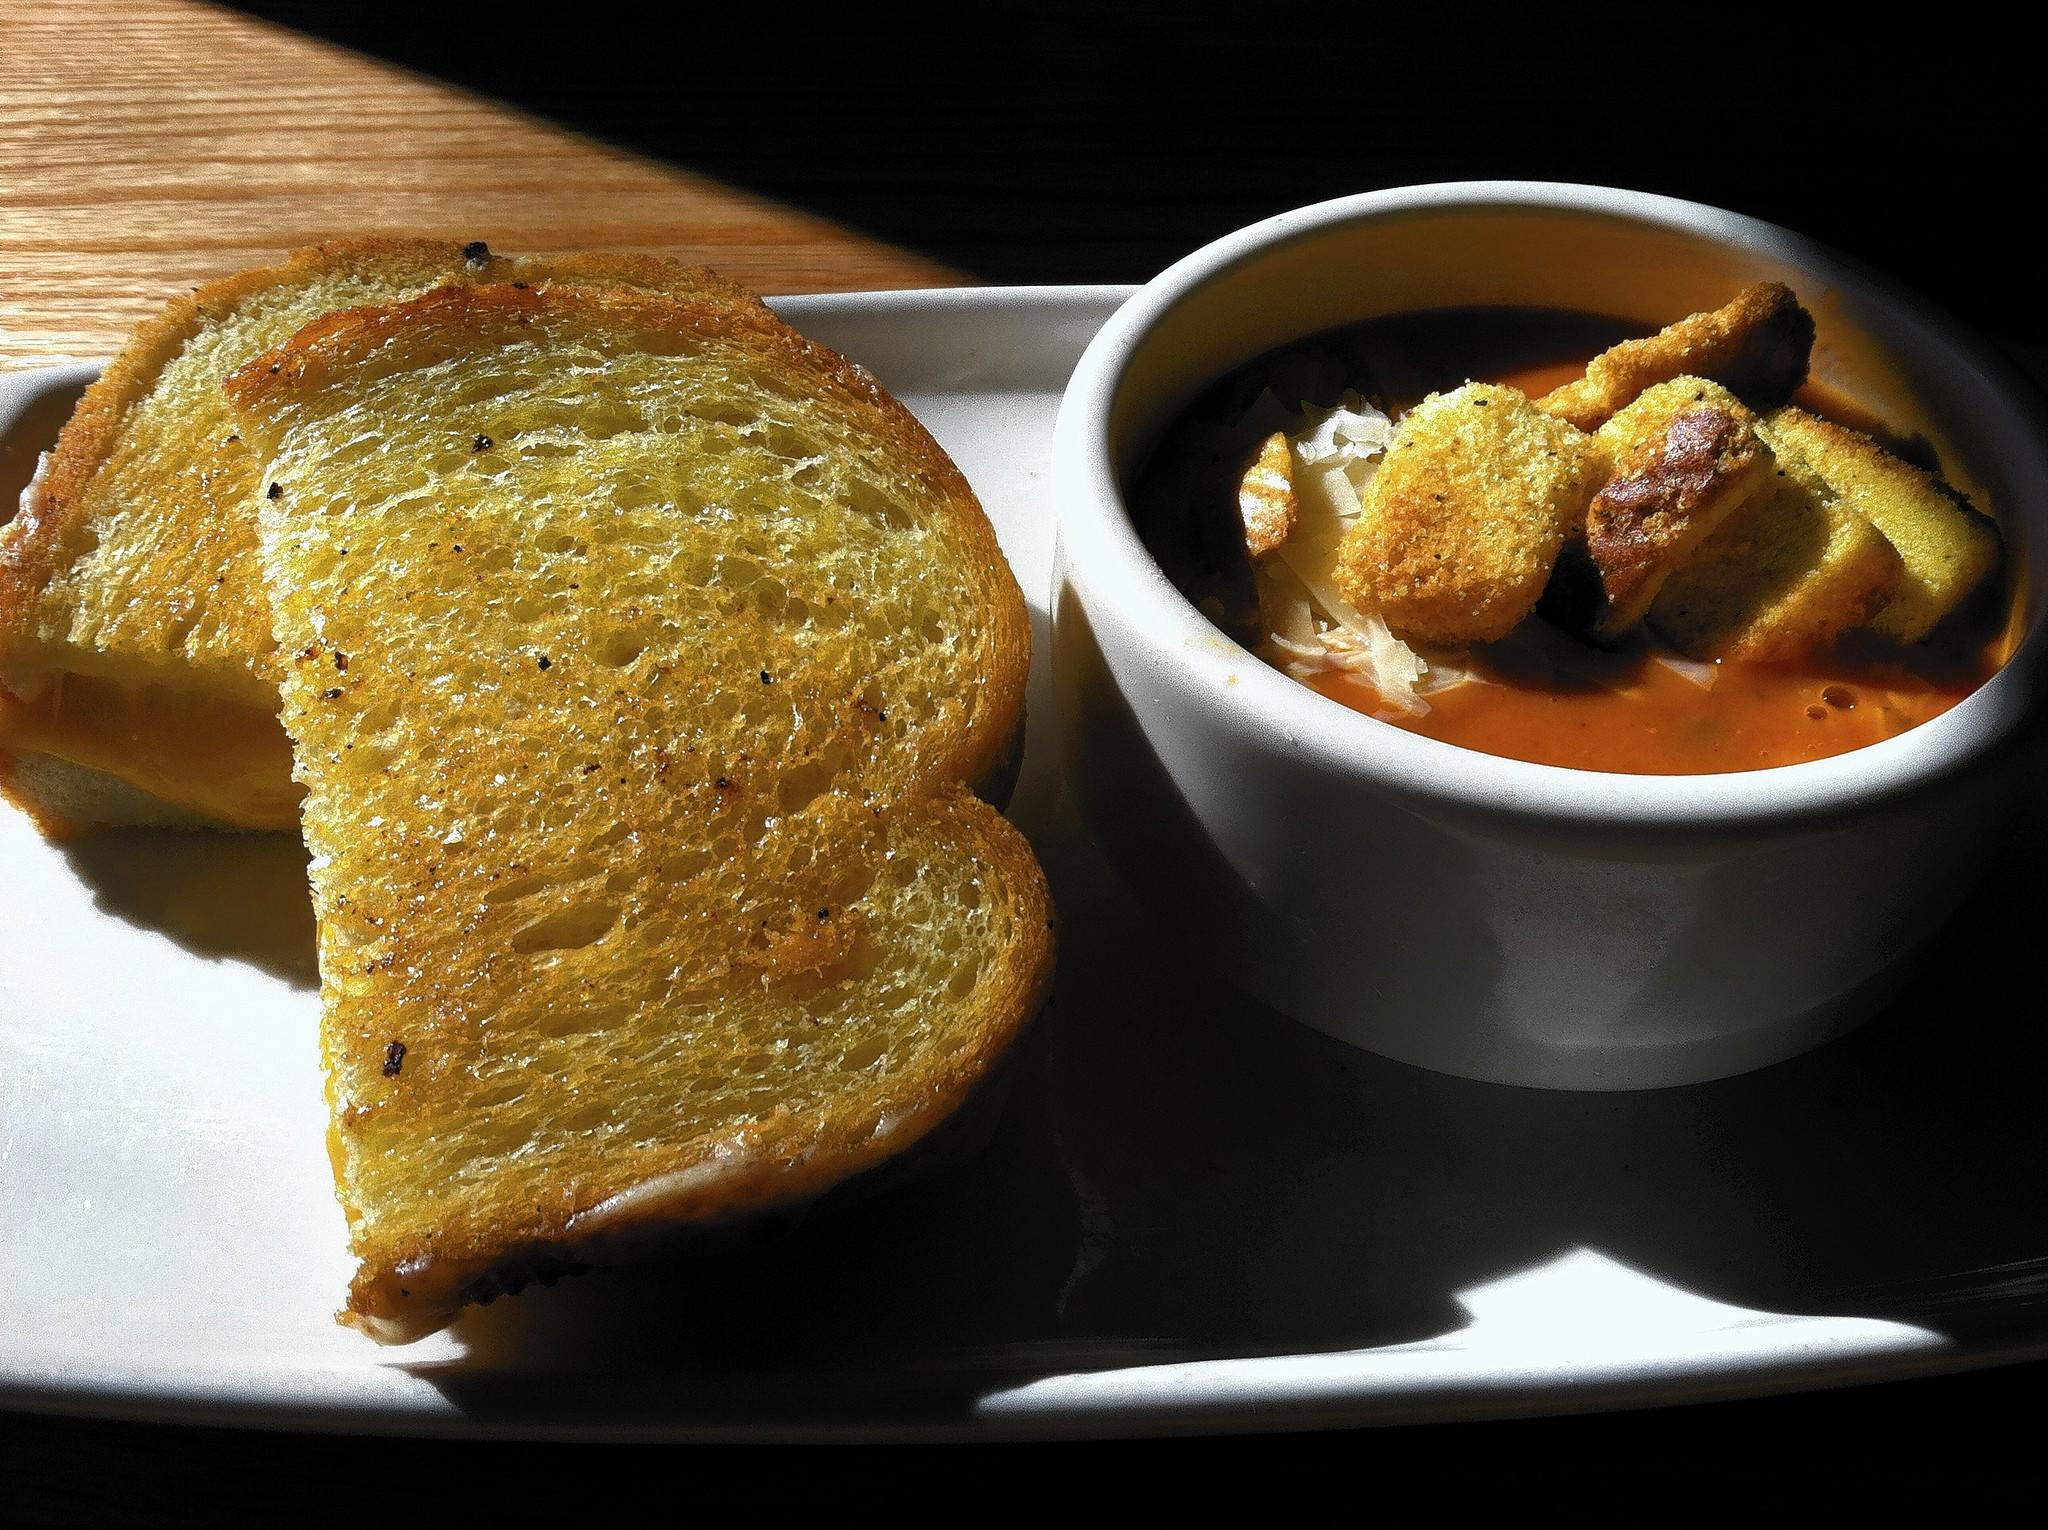 Food Find: Four-Cheese Grille and Tomato-Basil Soup at Applebee's